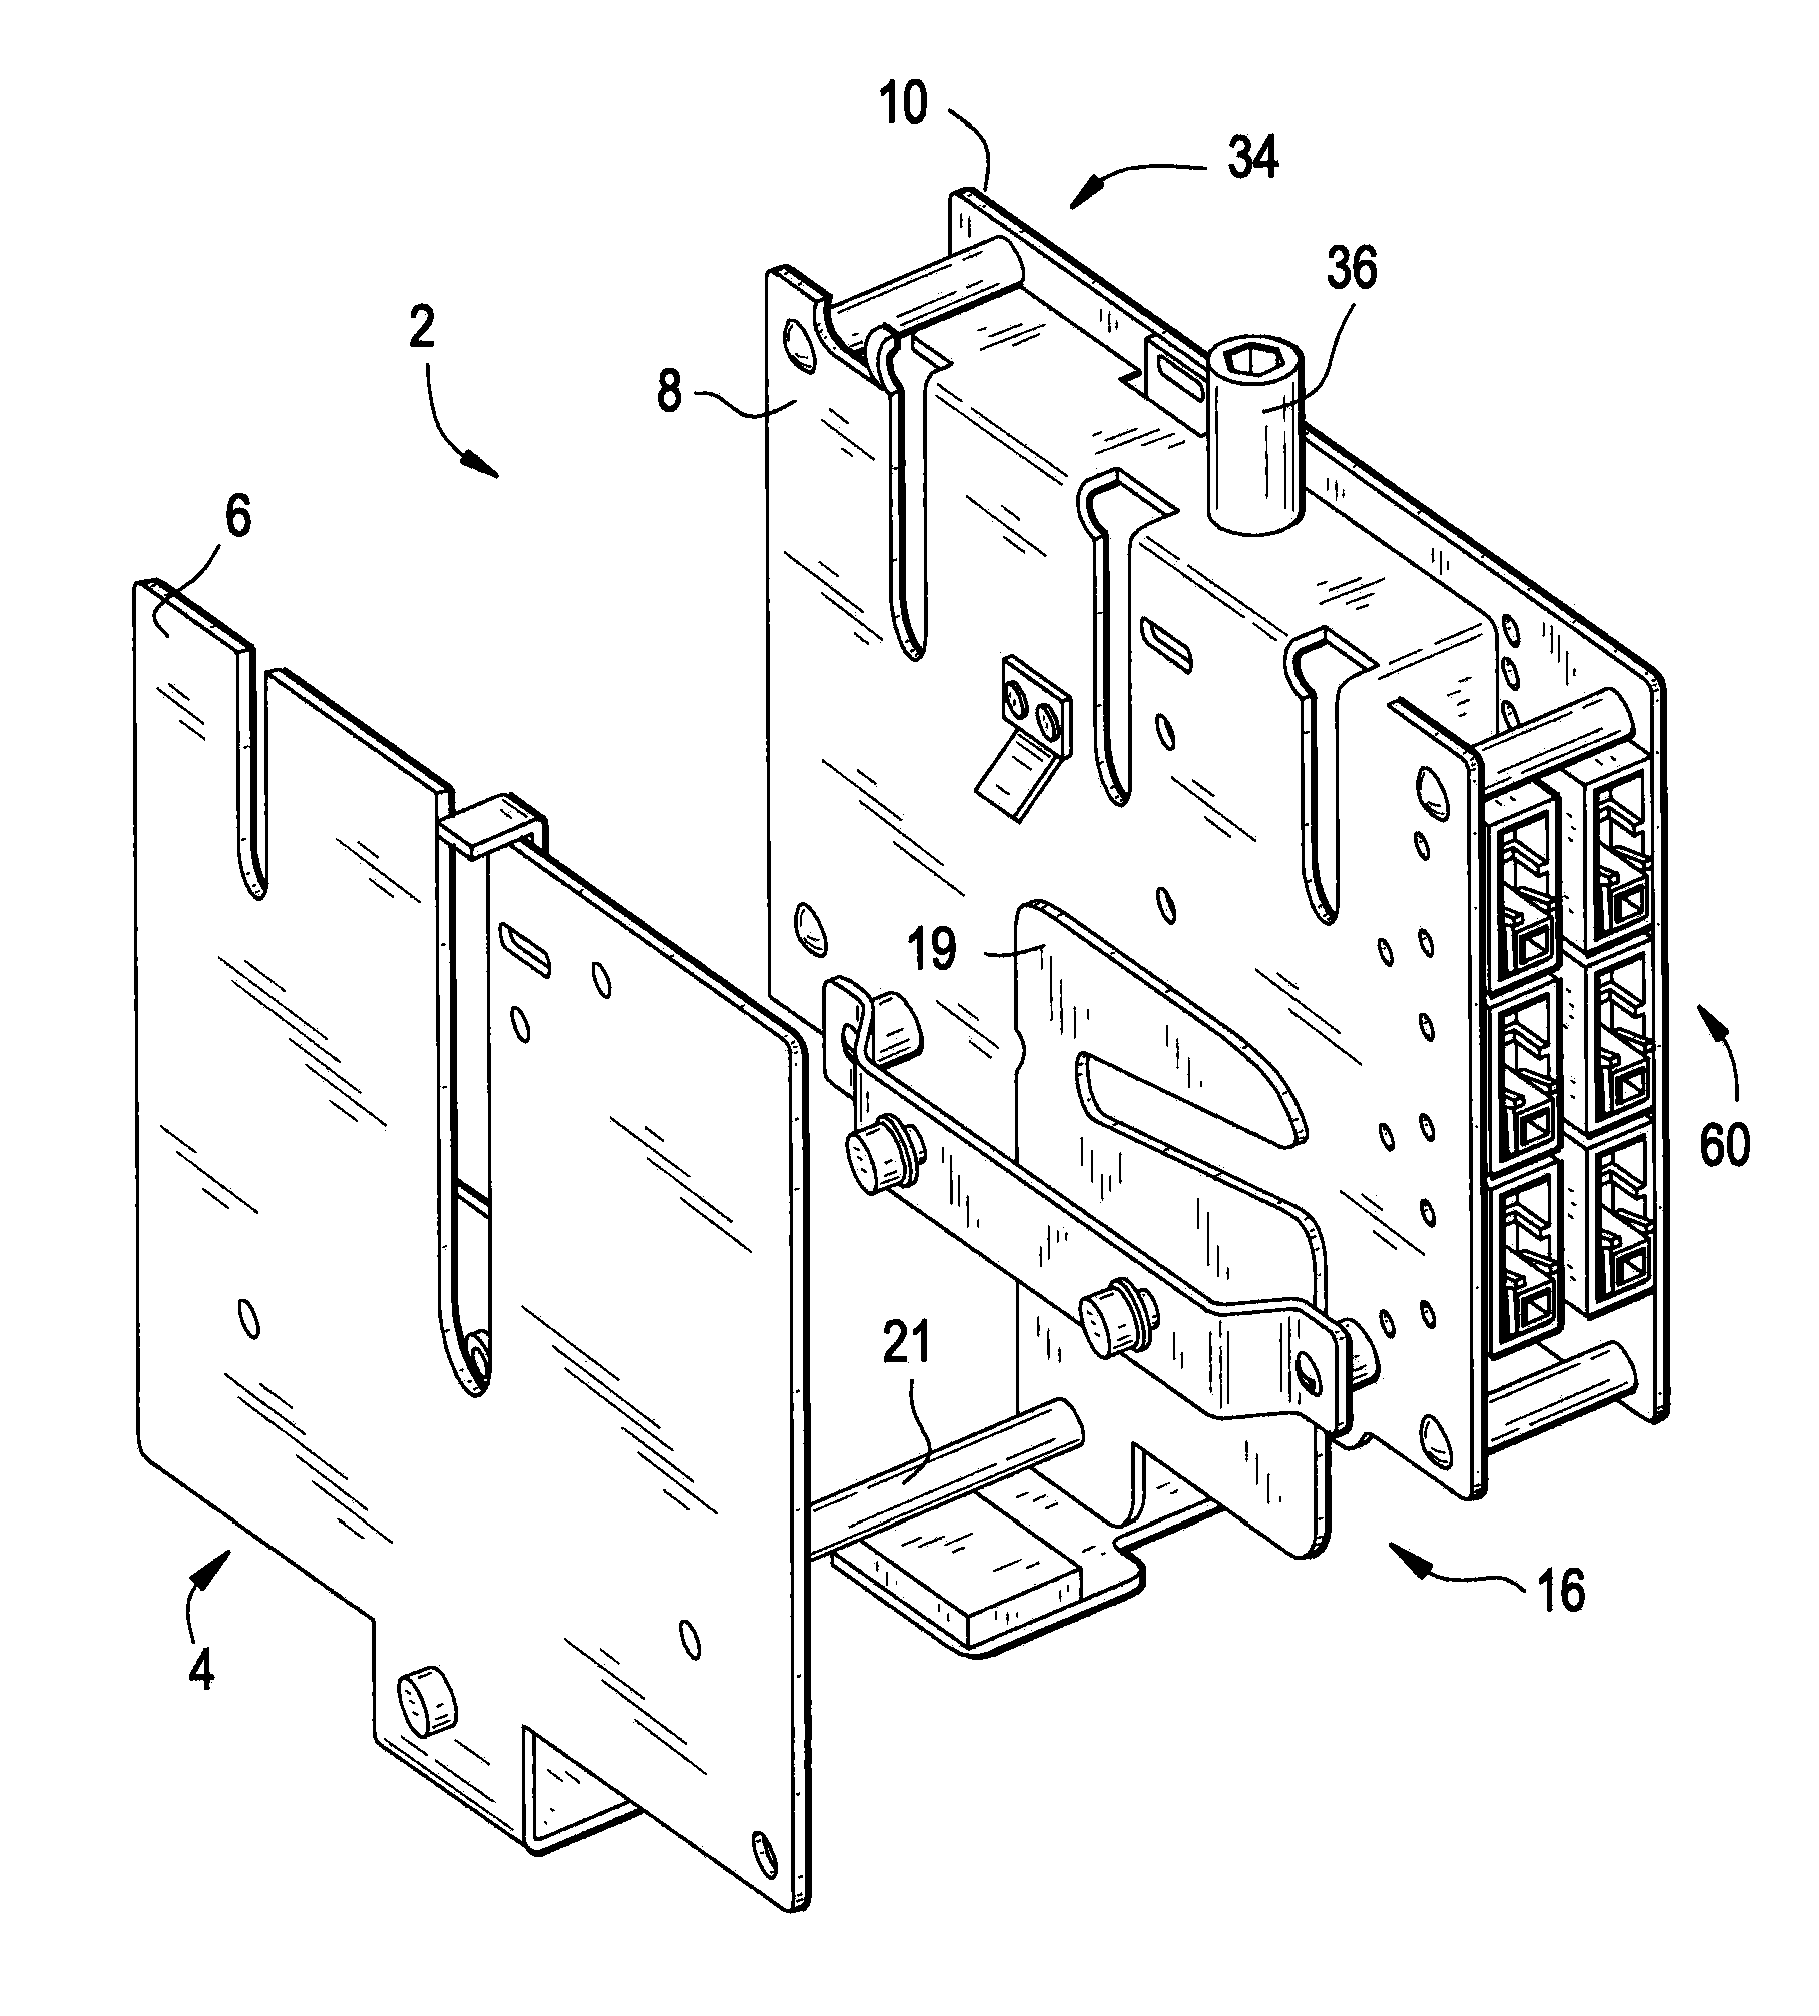 patent us8119943 - draw-out mechanism for molded case circuit breakers